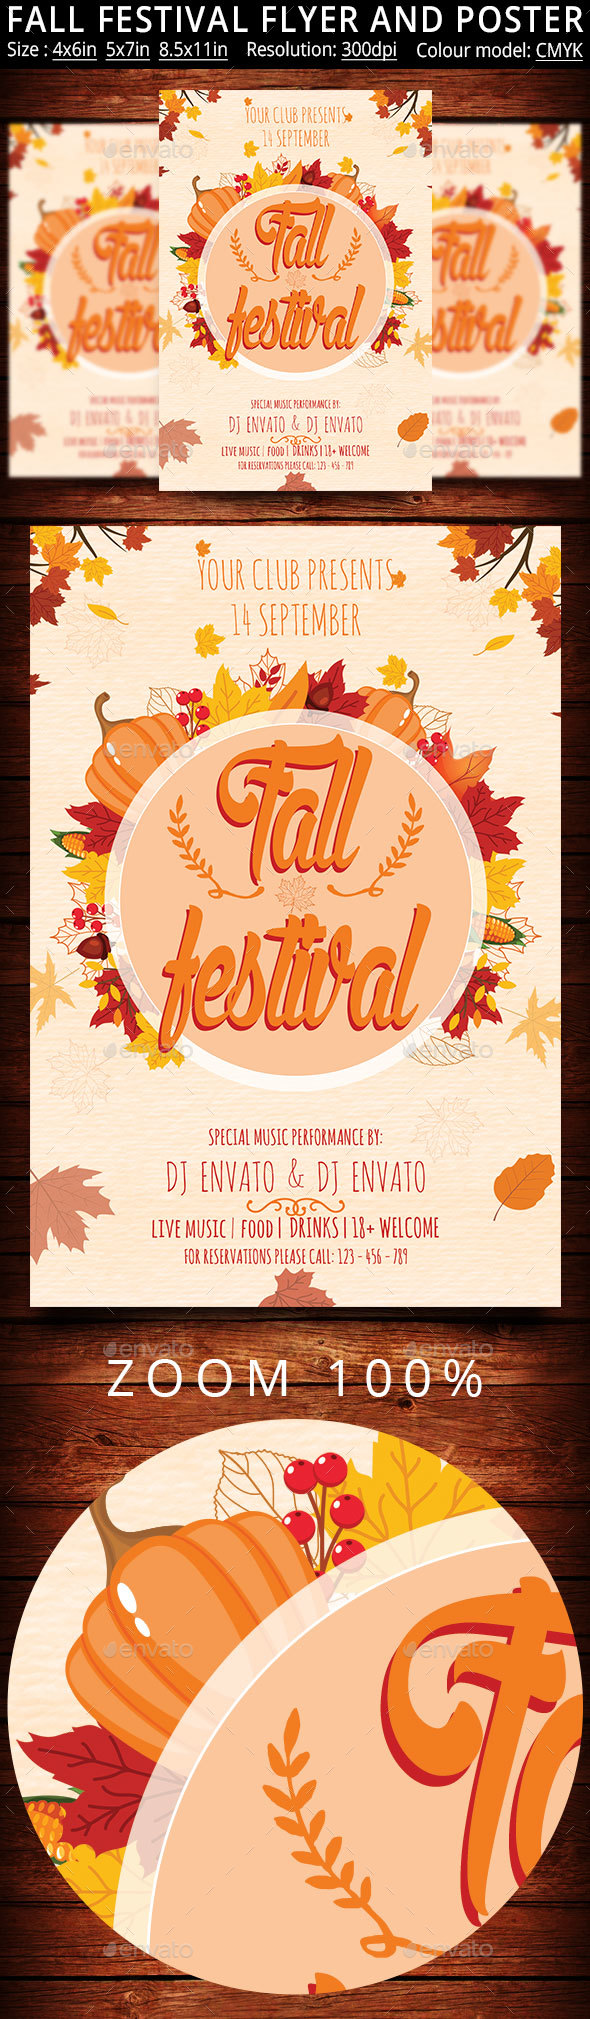 Fall Festival Flyer And Poster - Events Flyers